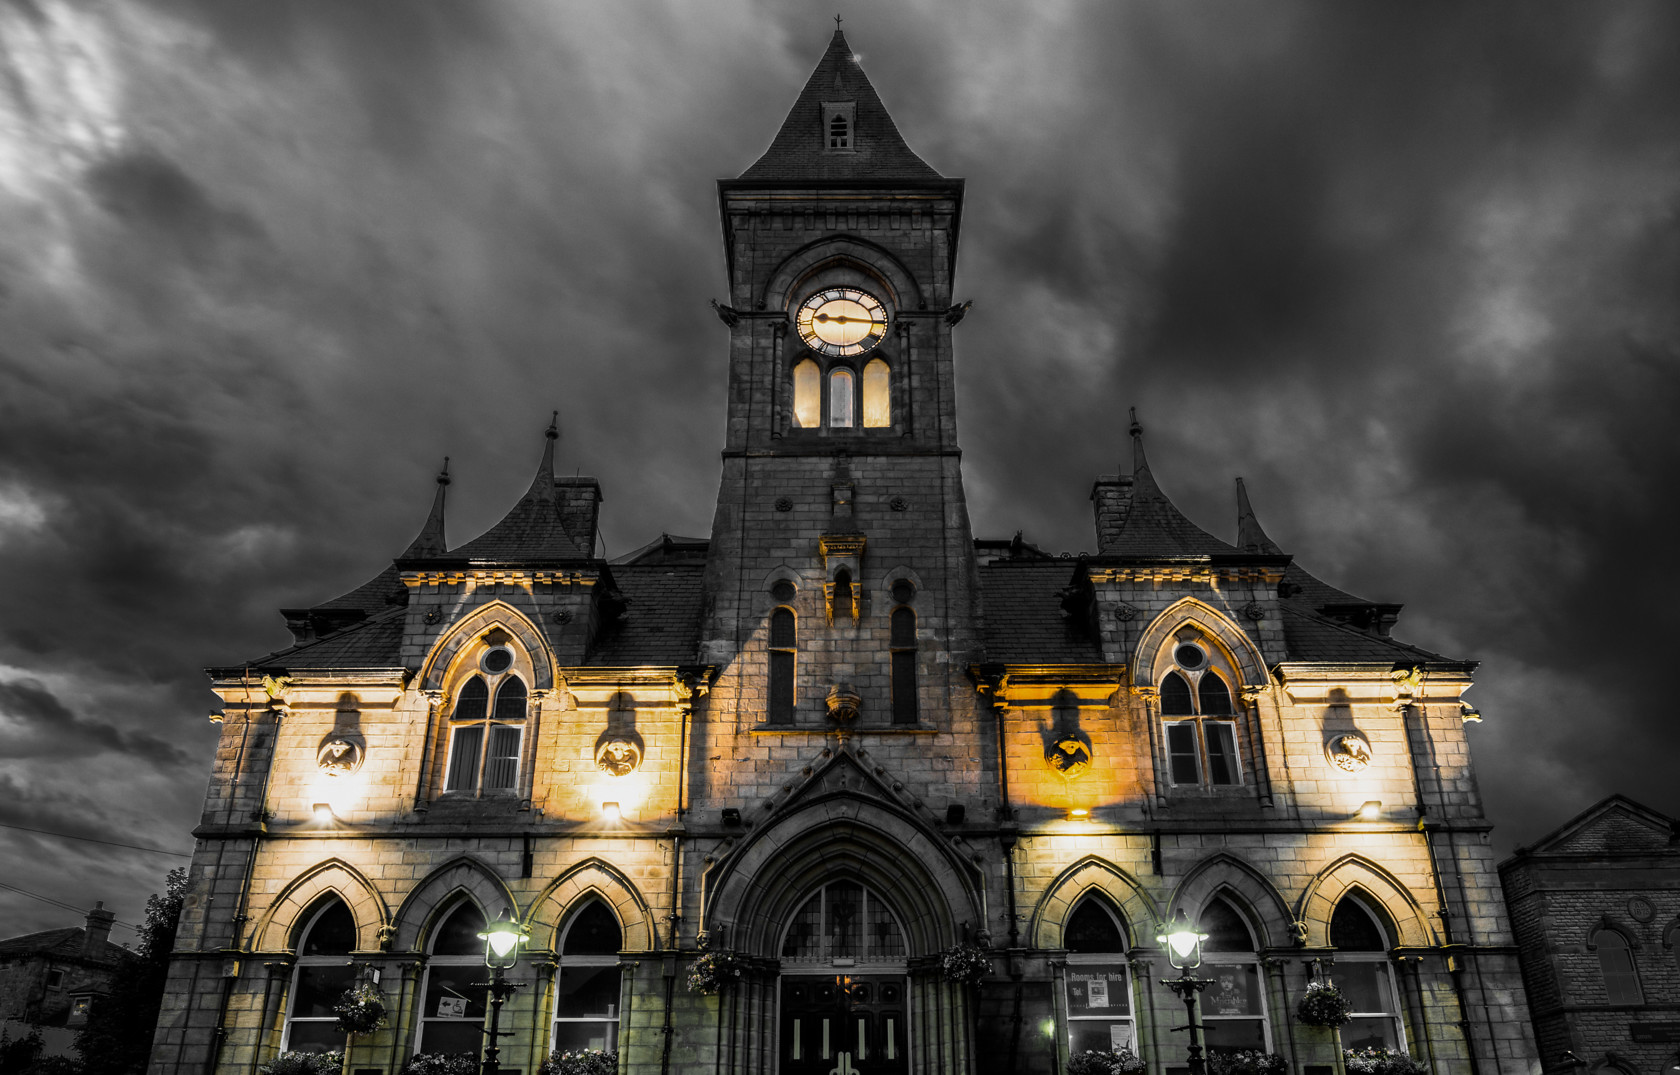 town hall, yeadon (ref fa 44) 